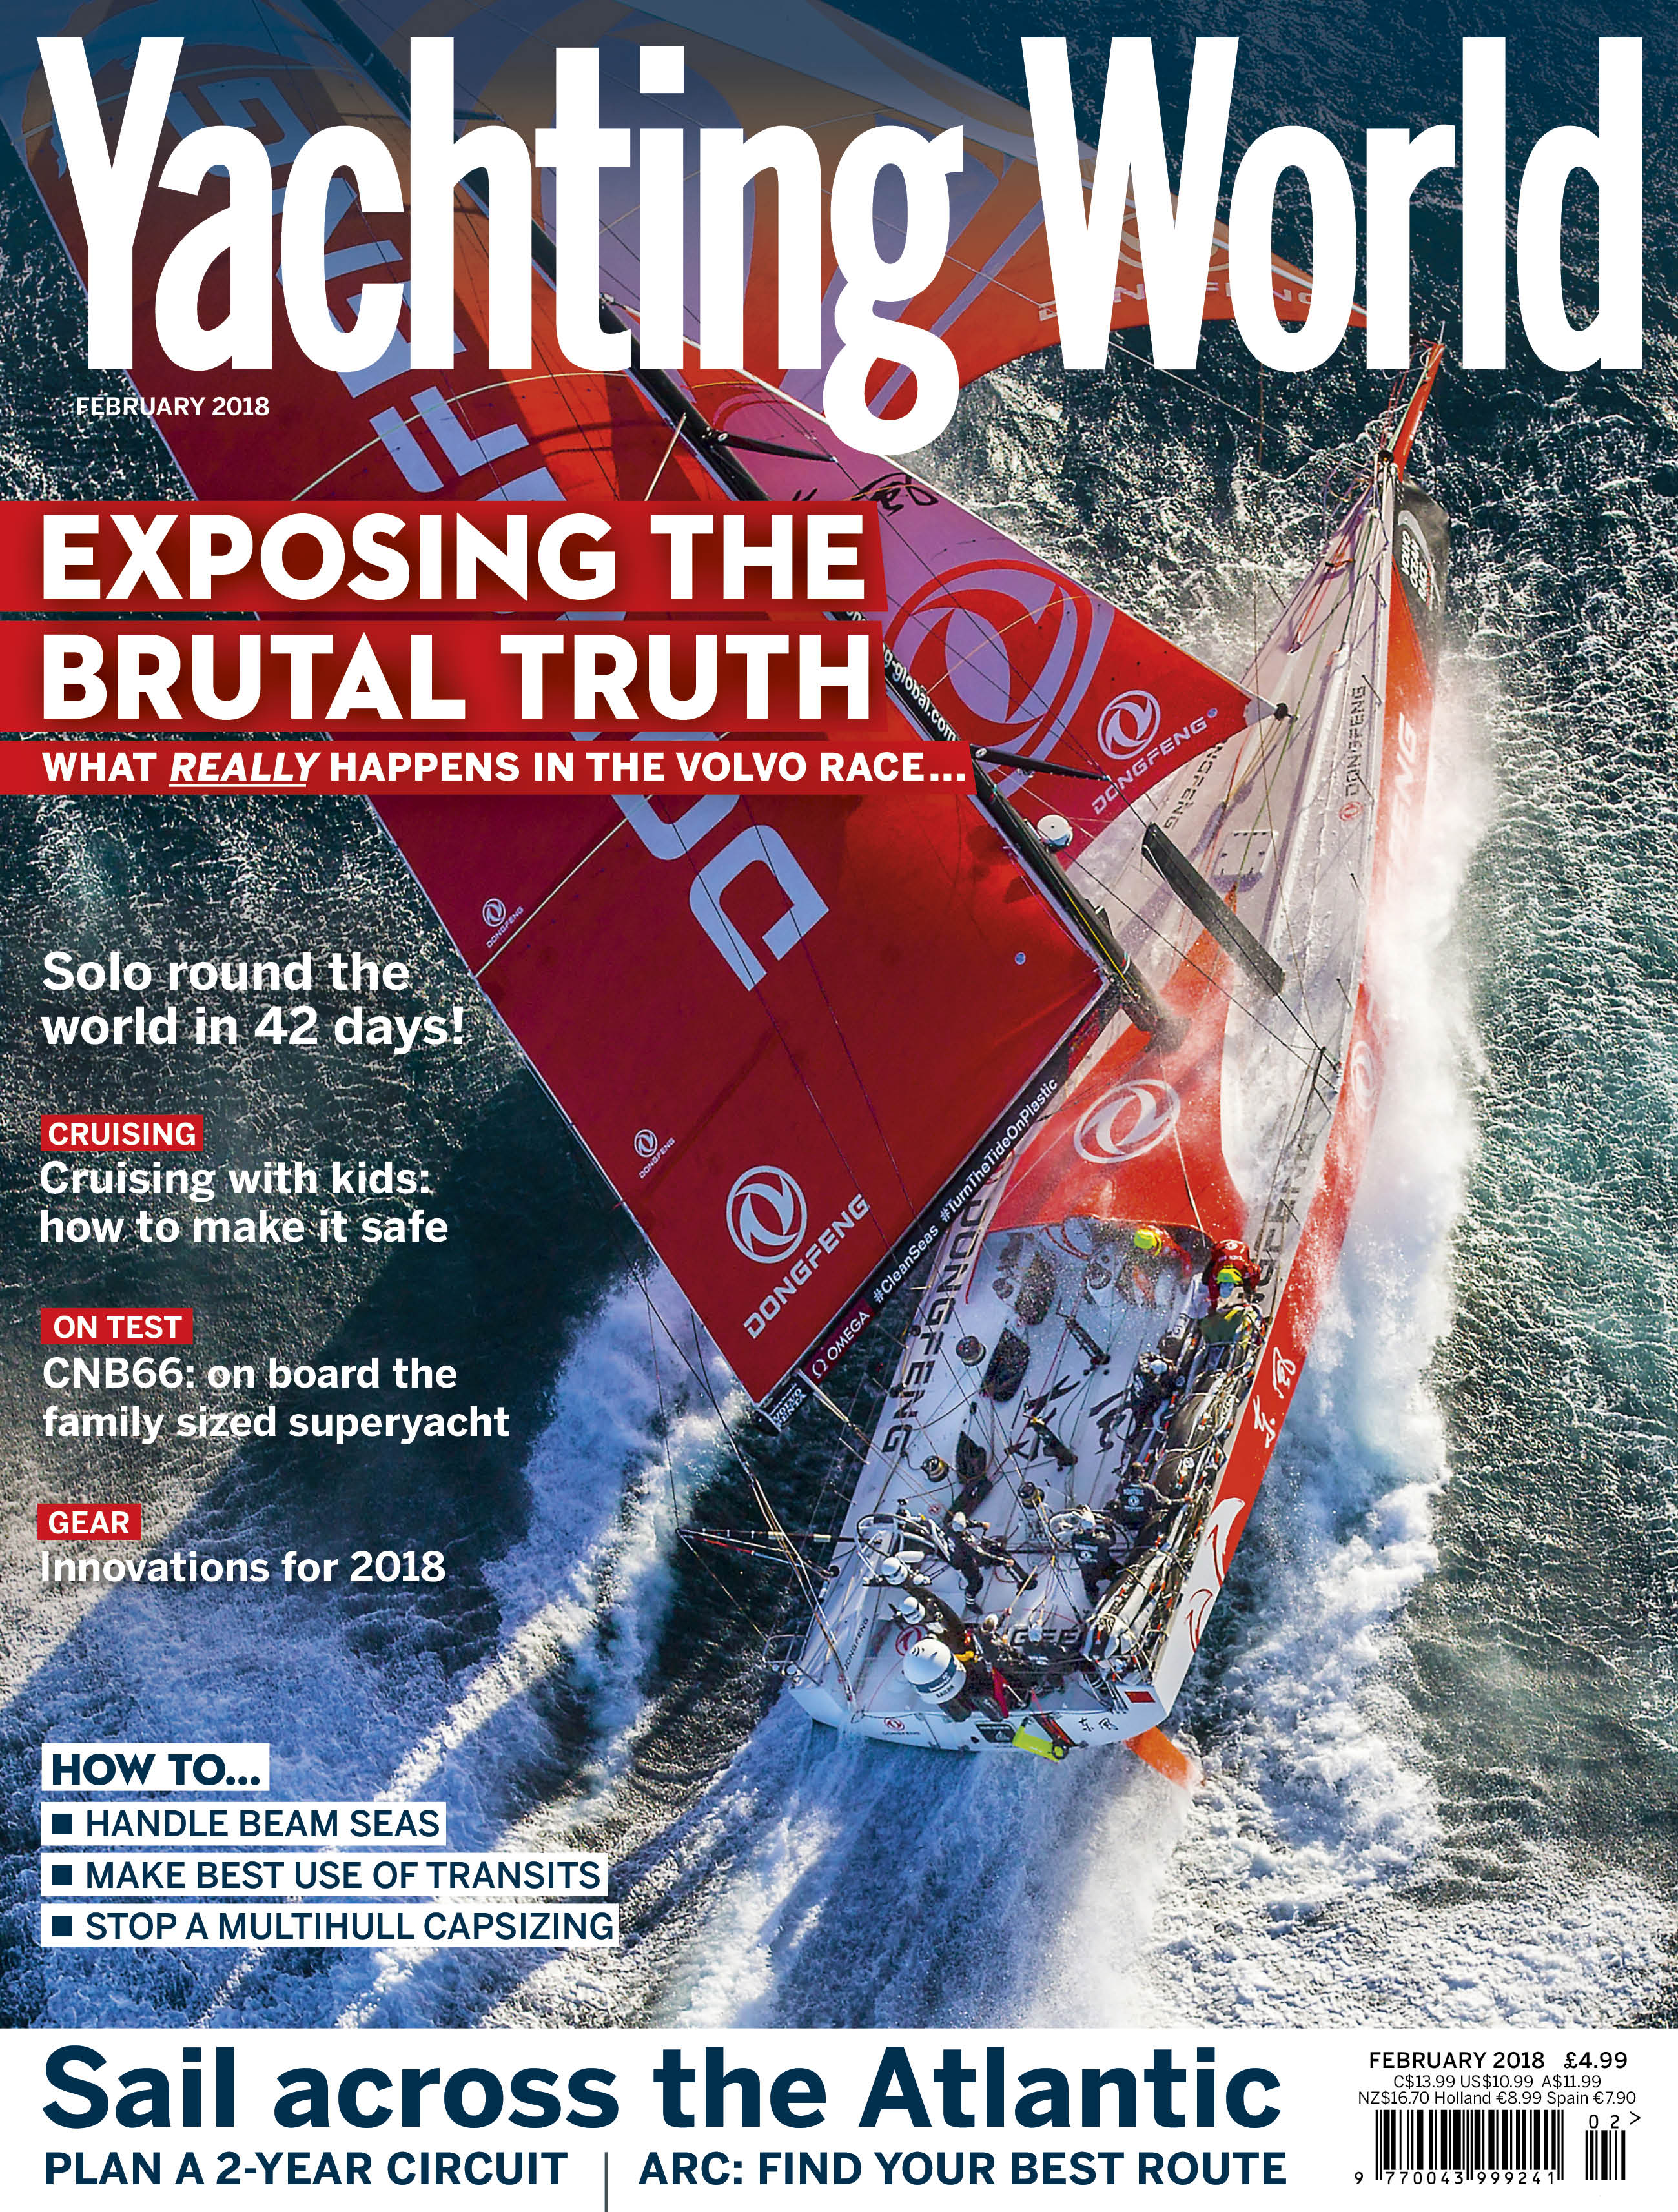 February 2018 issue - Yachting World